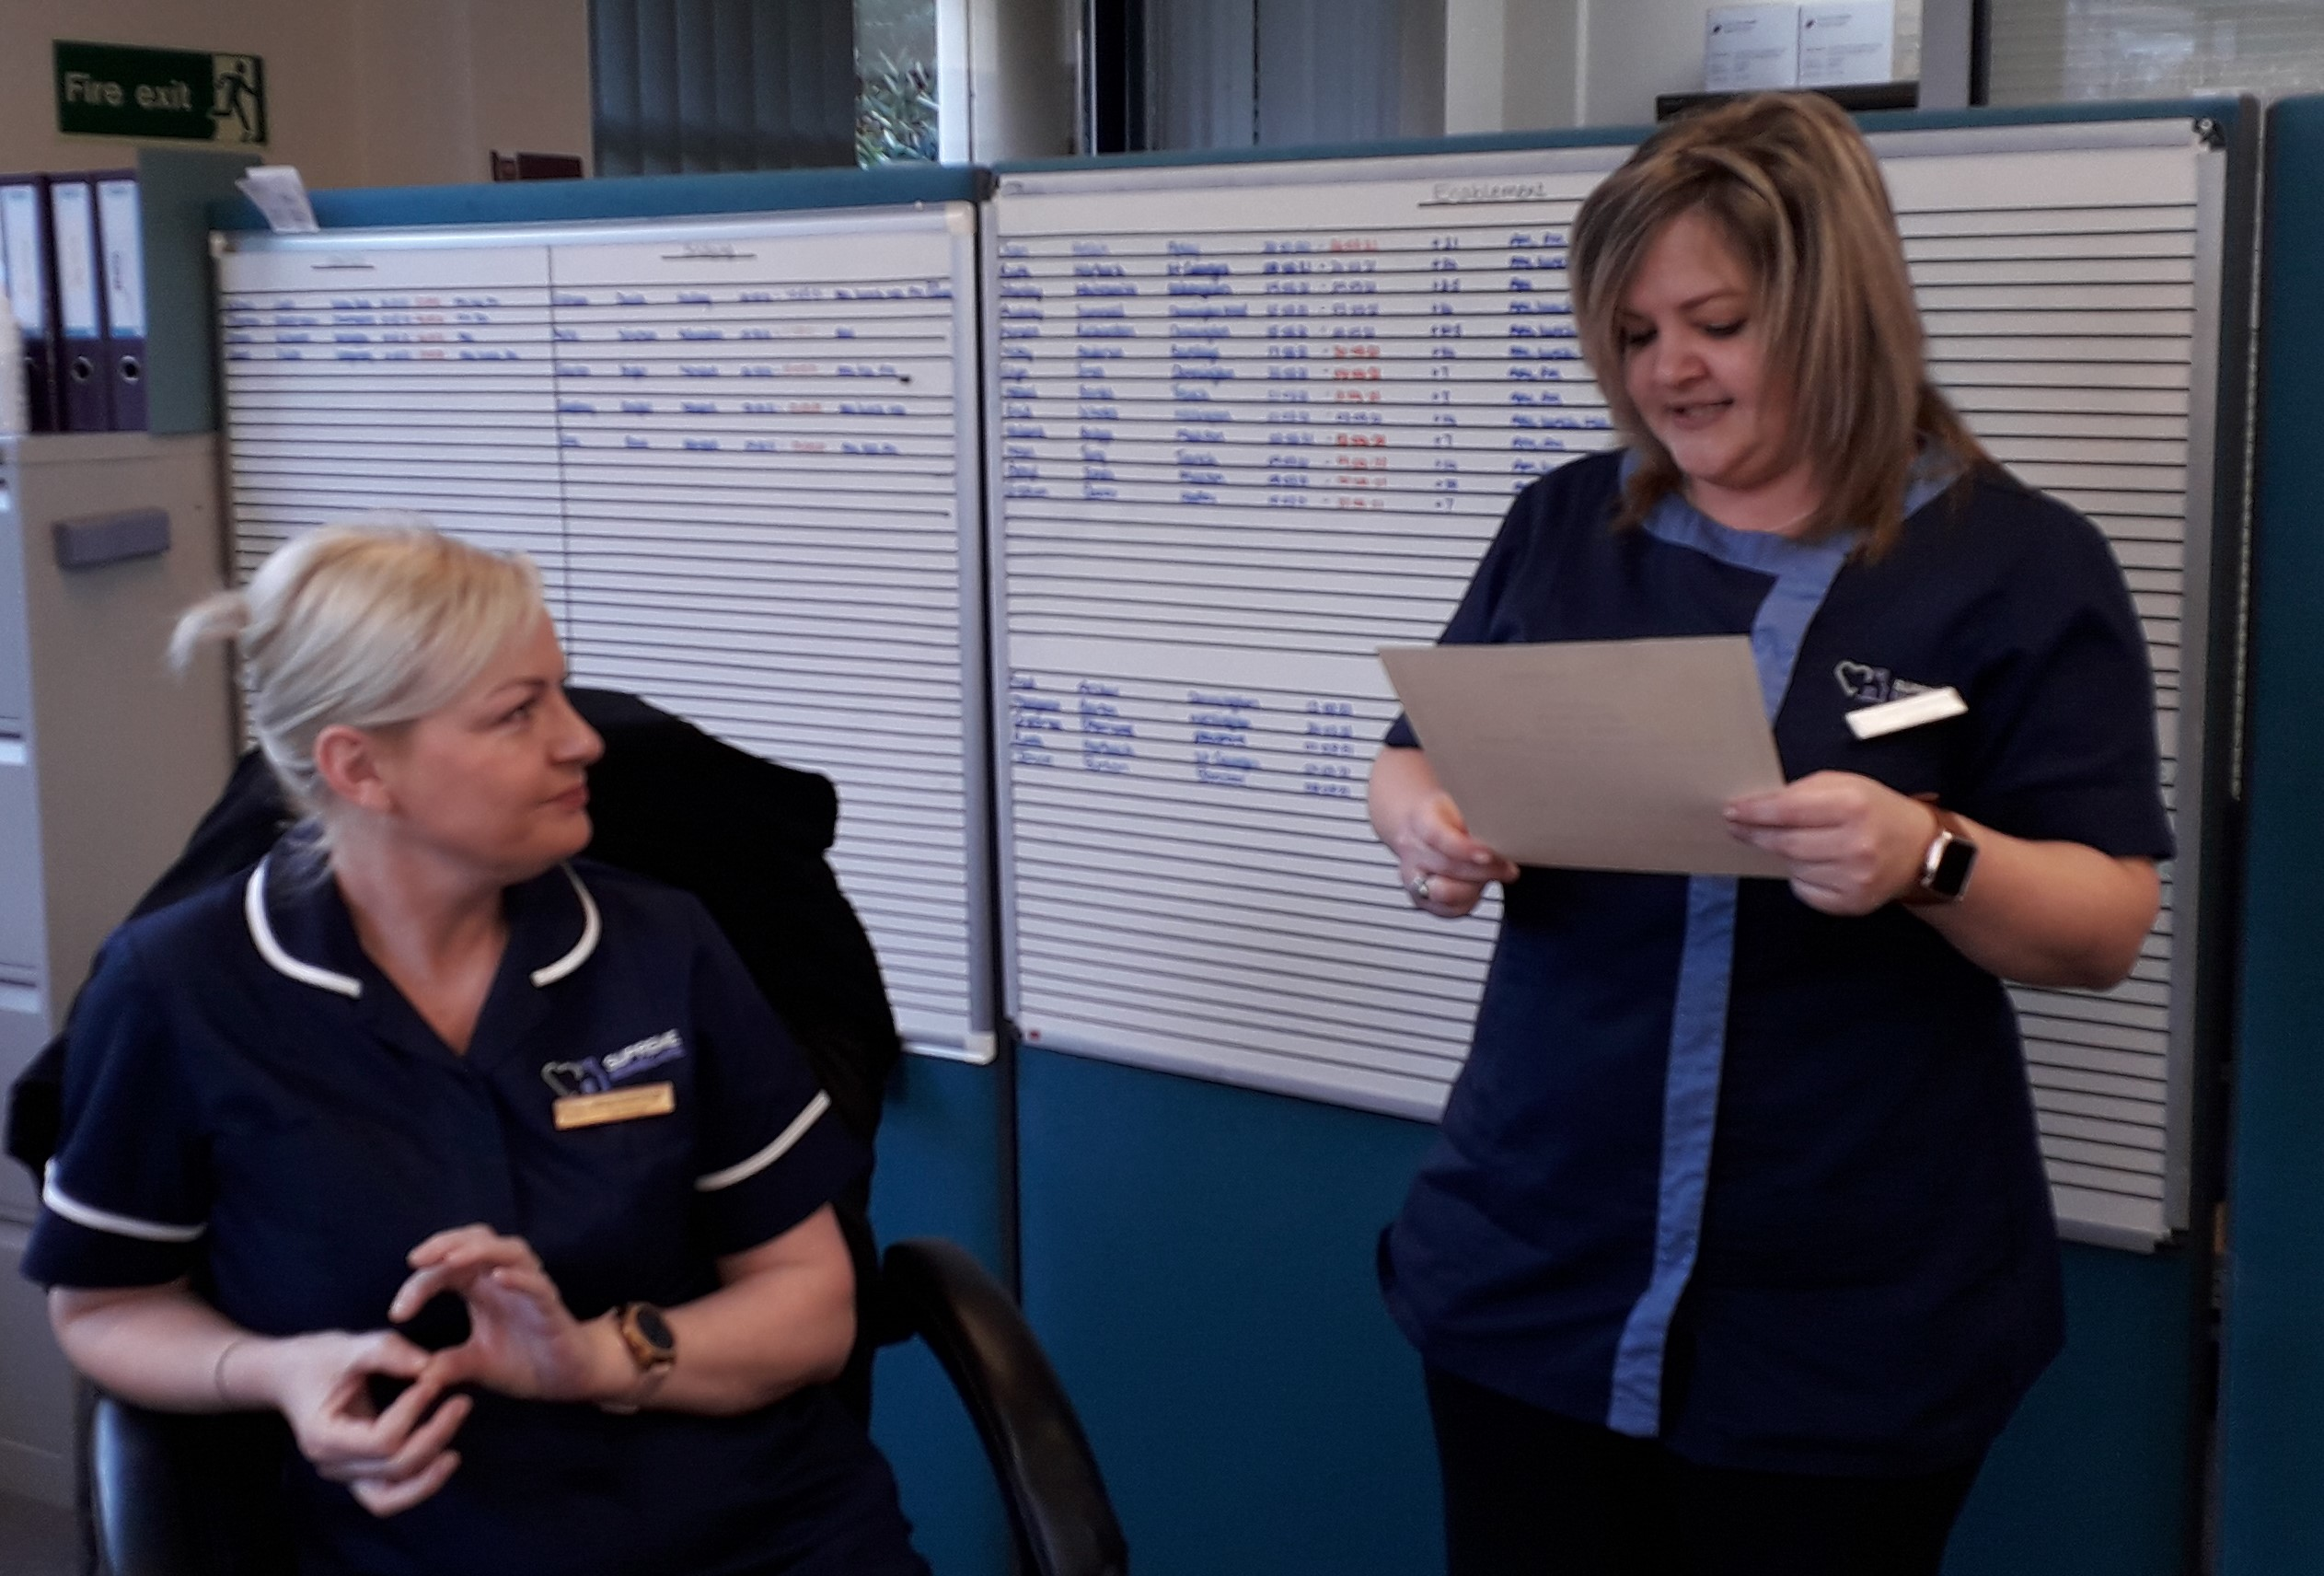 Star nomination for the Care Manager